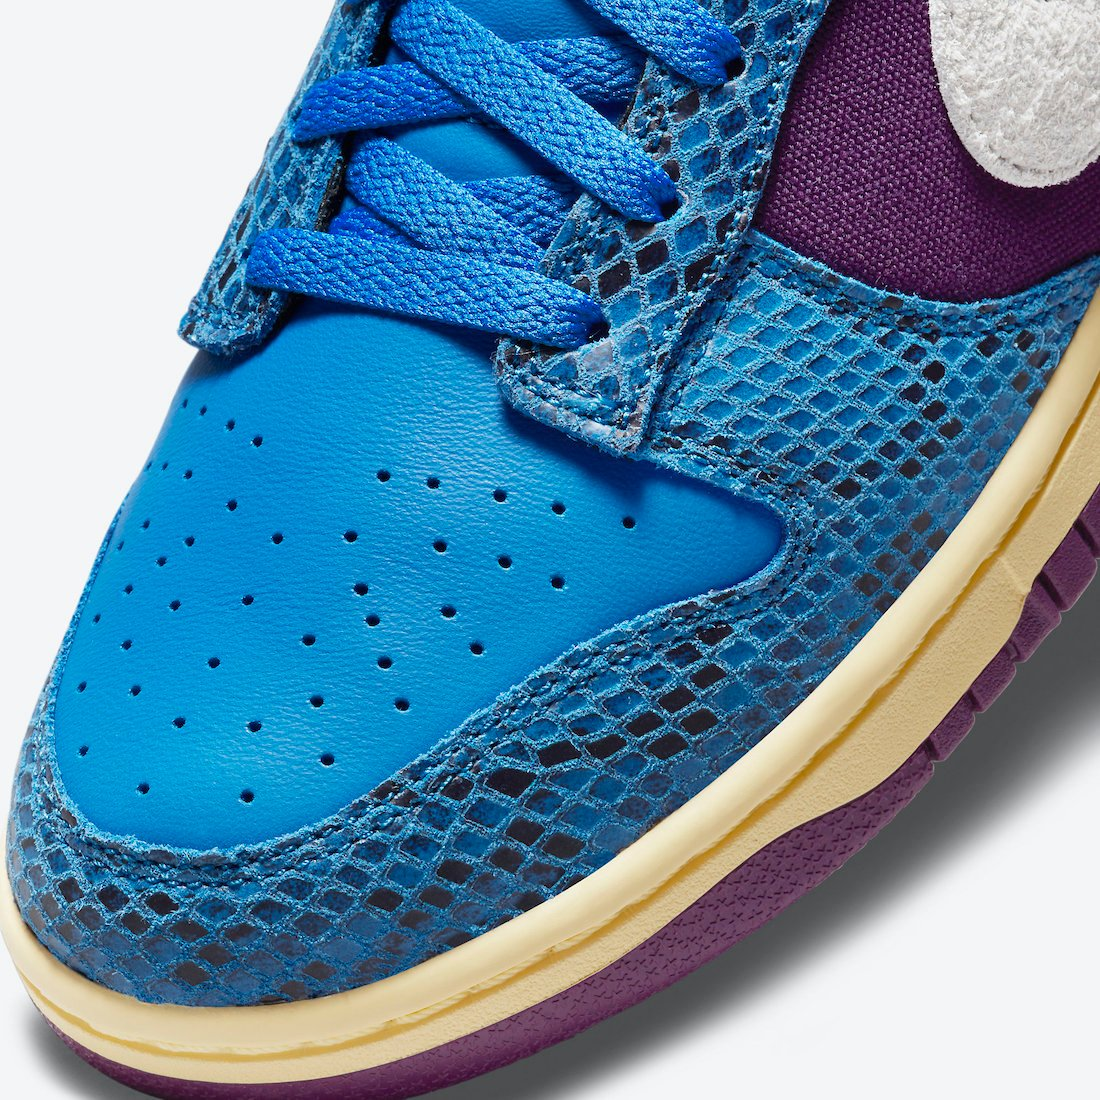 Undefeated Nike Dunk Low 5 On It DH6508-400 Release Date